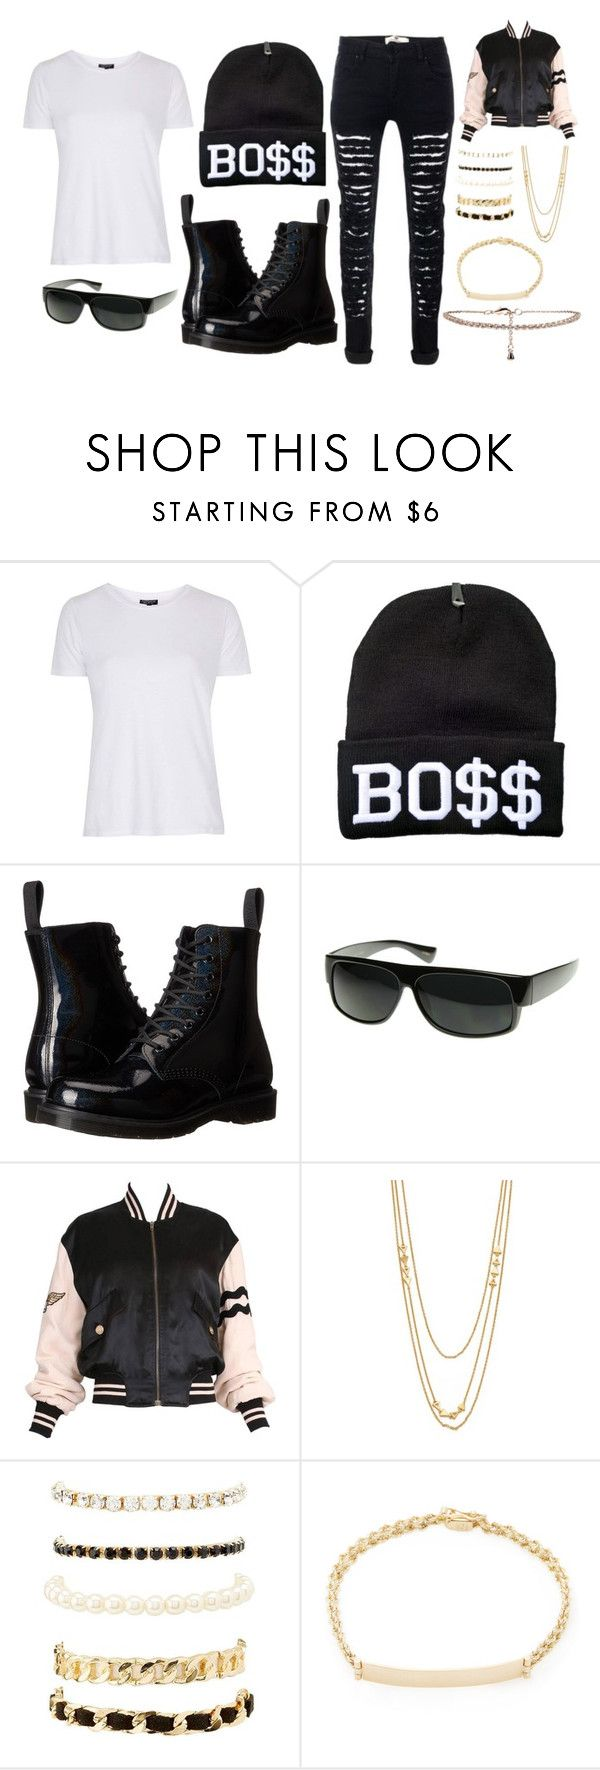 """Rapper"" by lauren53103 on Polyvore featuring Topshop, Dr. Martens, ZeroUV, Moschino, Gorjana, Charlotte Russe, Shay, New Look, Costume and rapper"